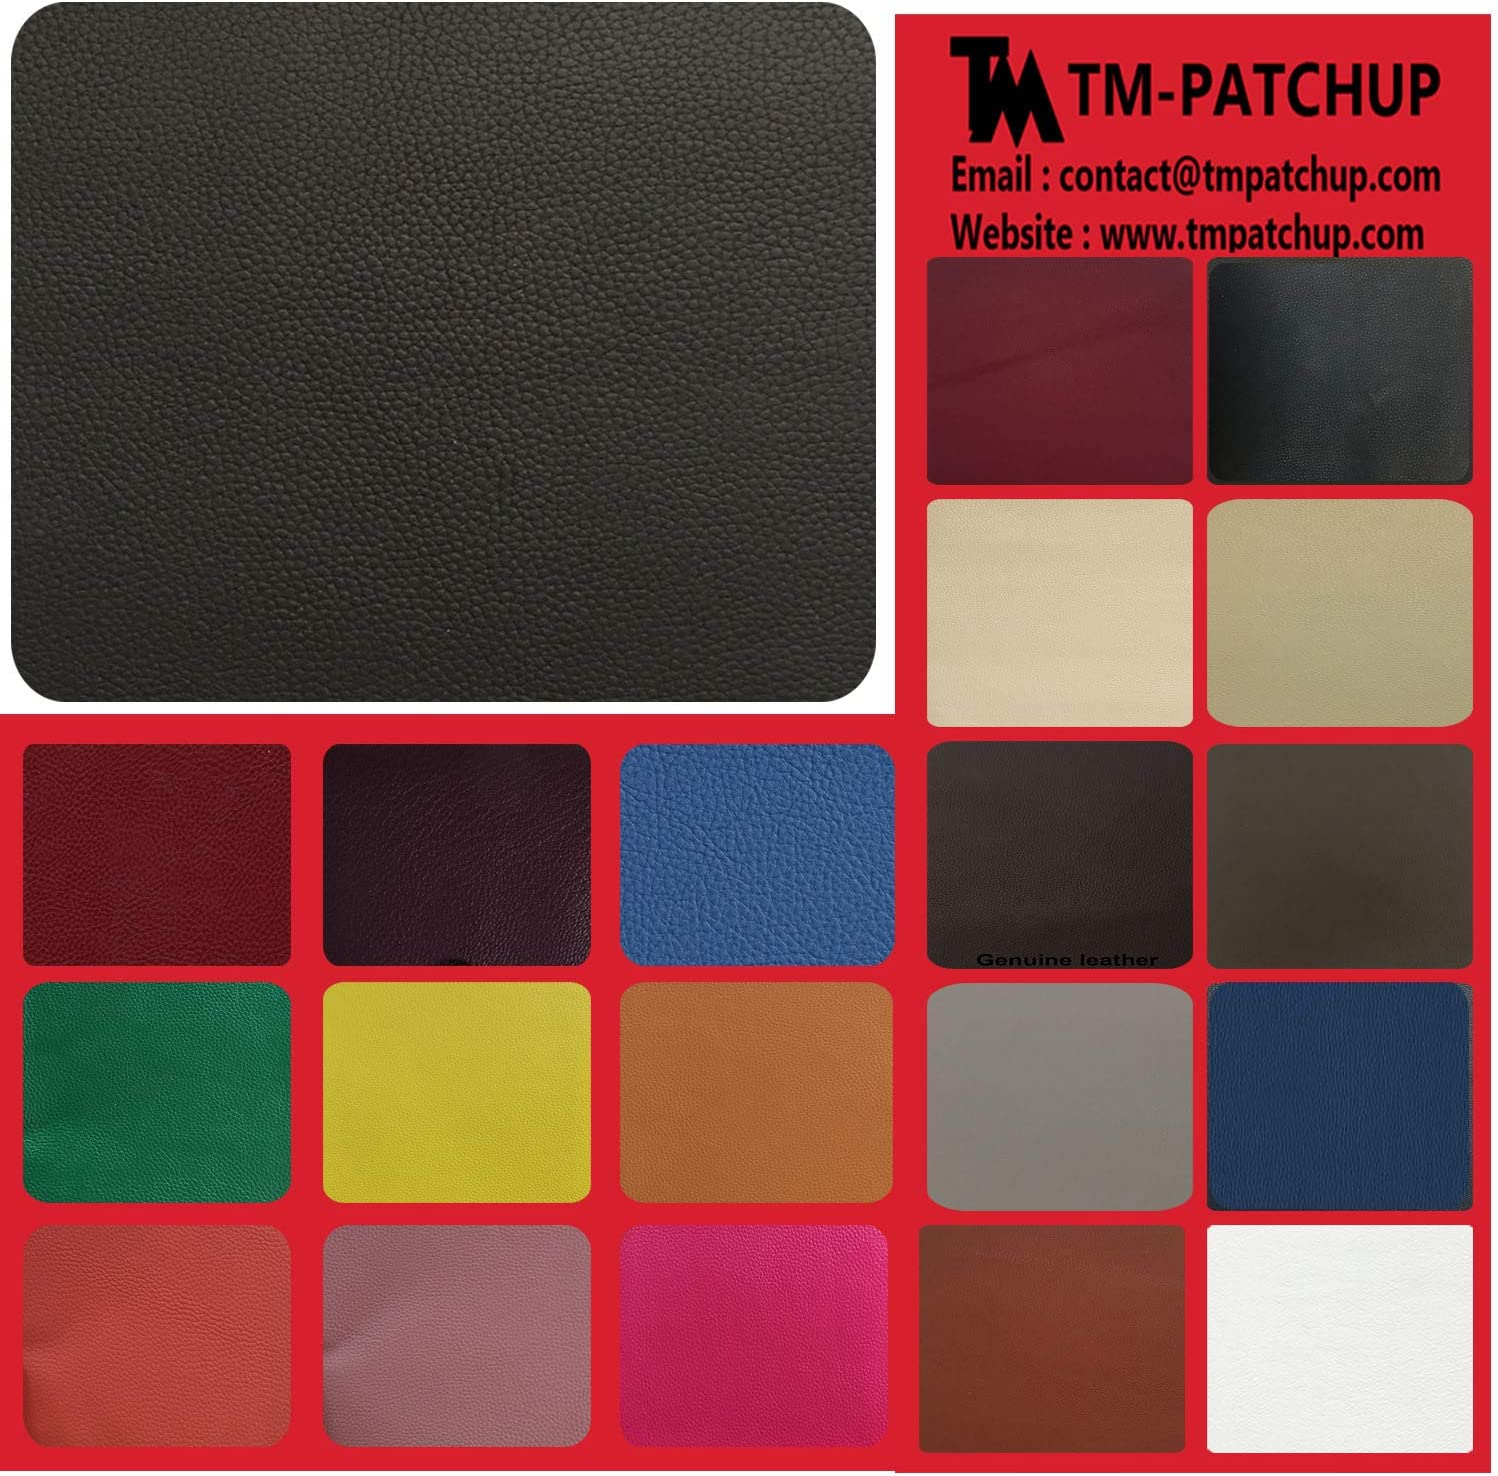 Black Leather and Vinyl Repair Patch by TMgroup, Genuine Faux Leather Repair Patch, Peel and Stick for Couch, Sofas, car Seats, Hand Bags,Furniture, Jackets, Large Size 3'' x 6''